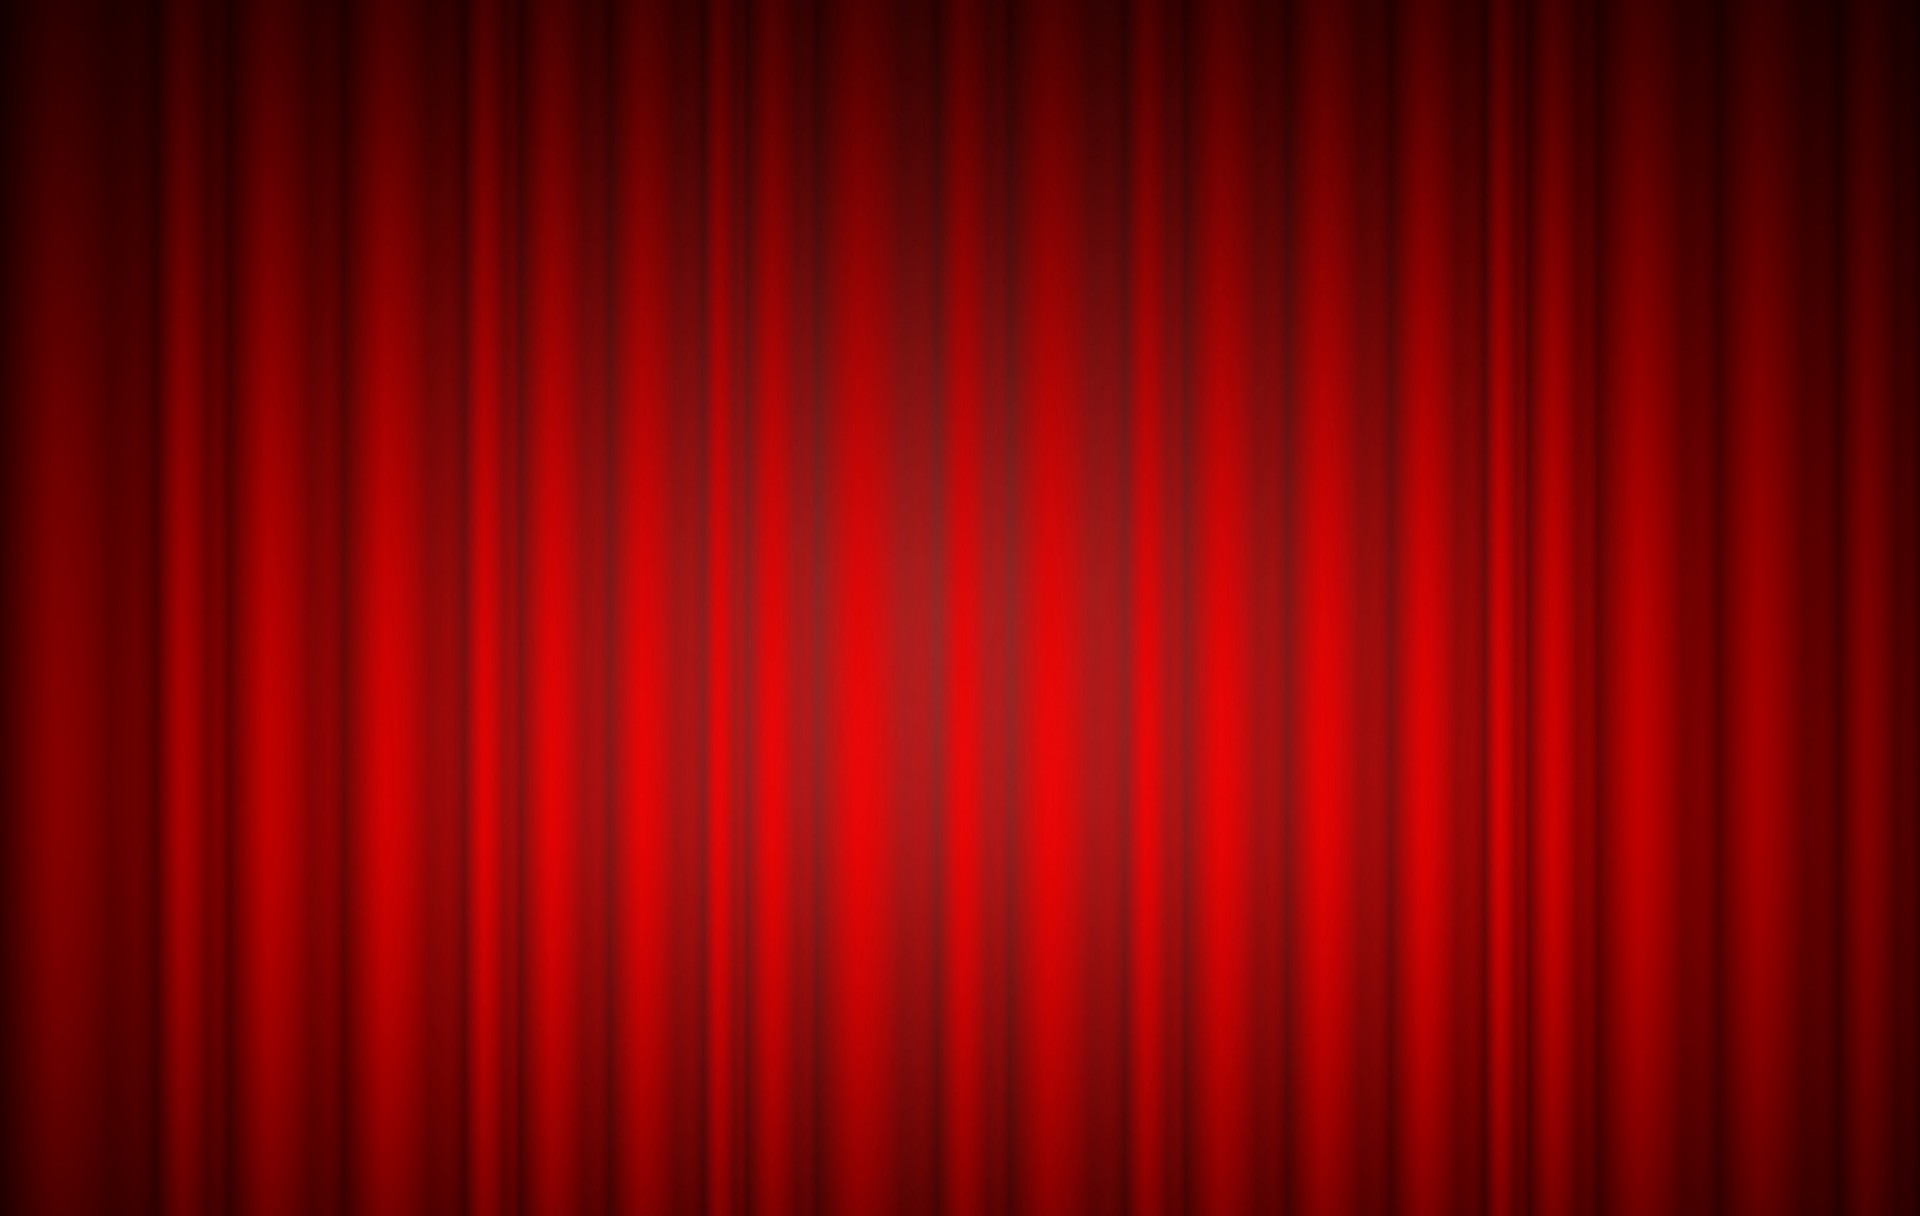 wallpapers red curtain background - photo #12